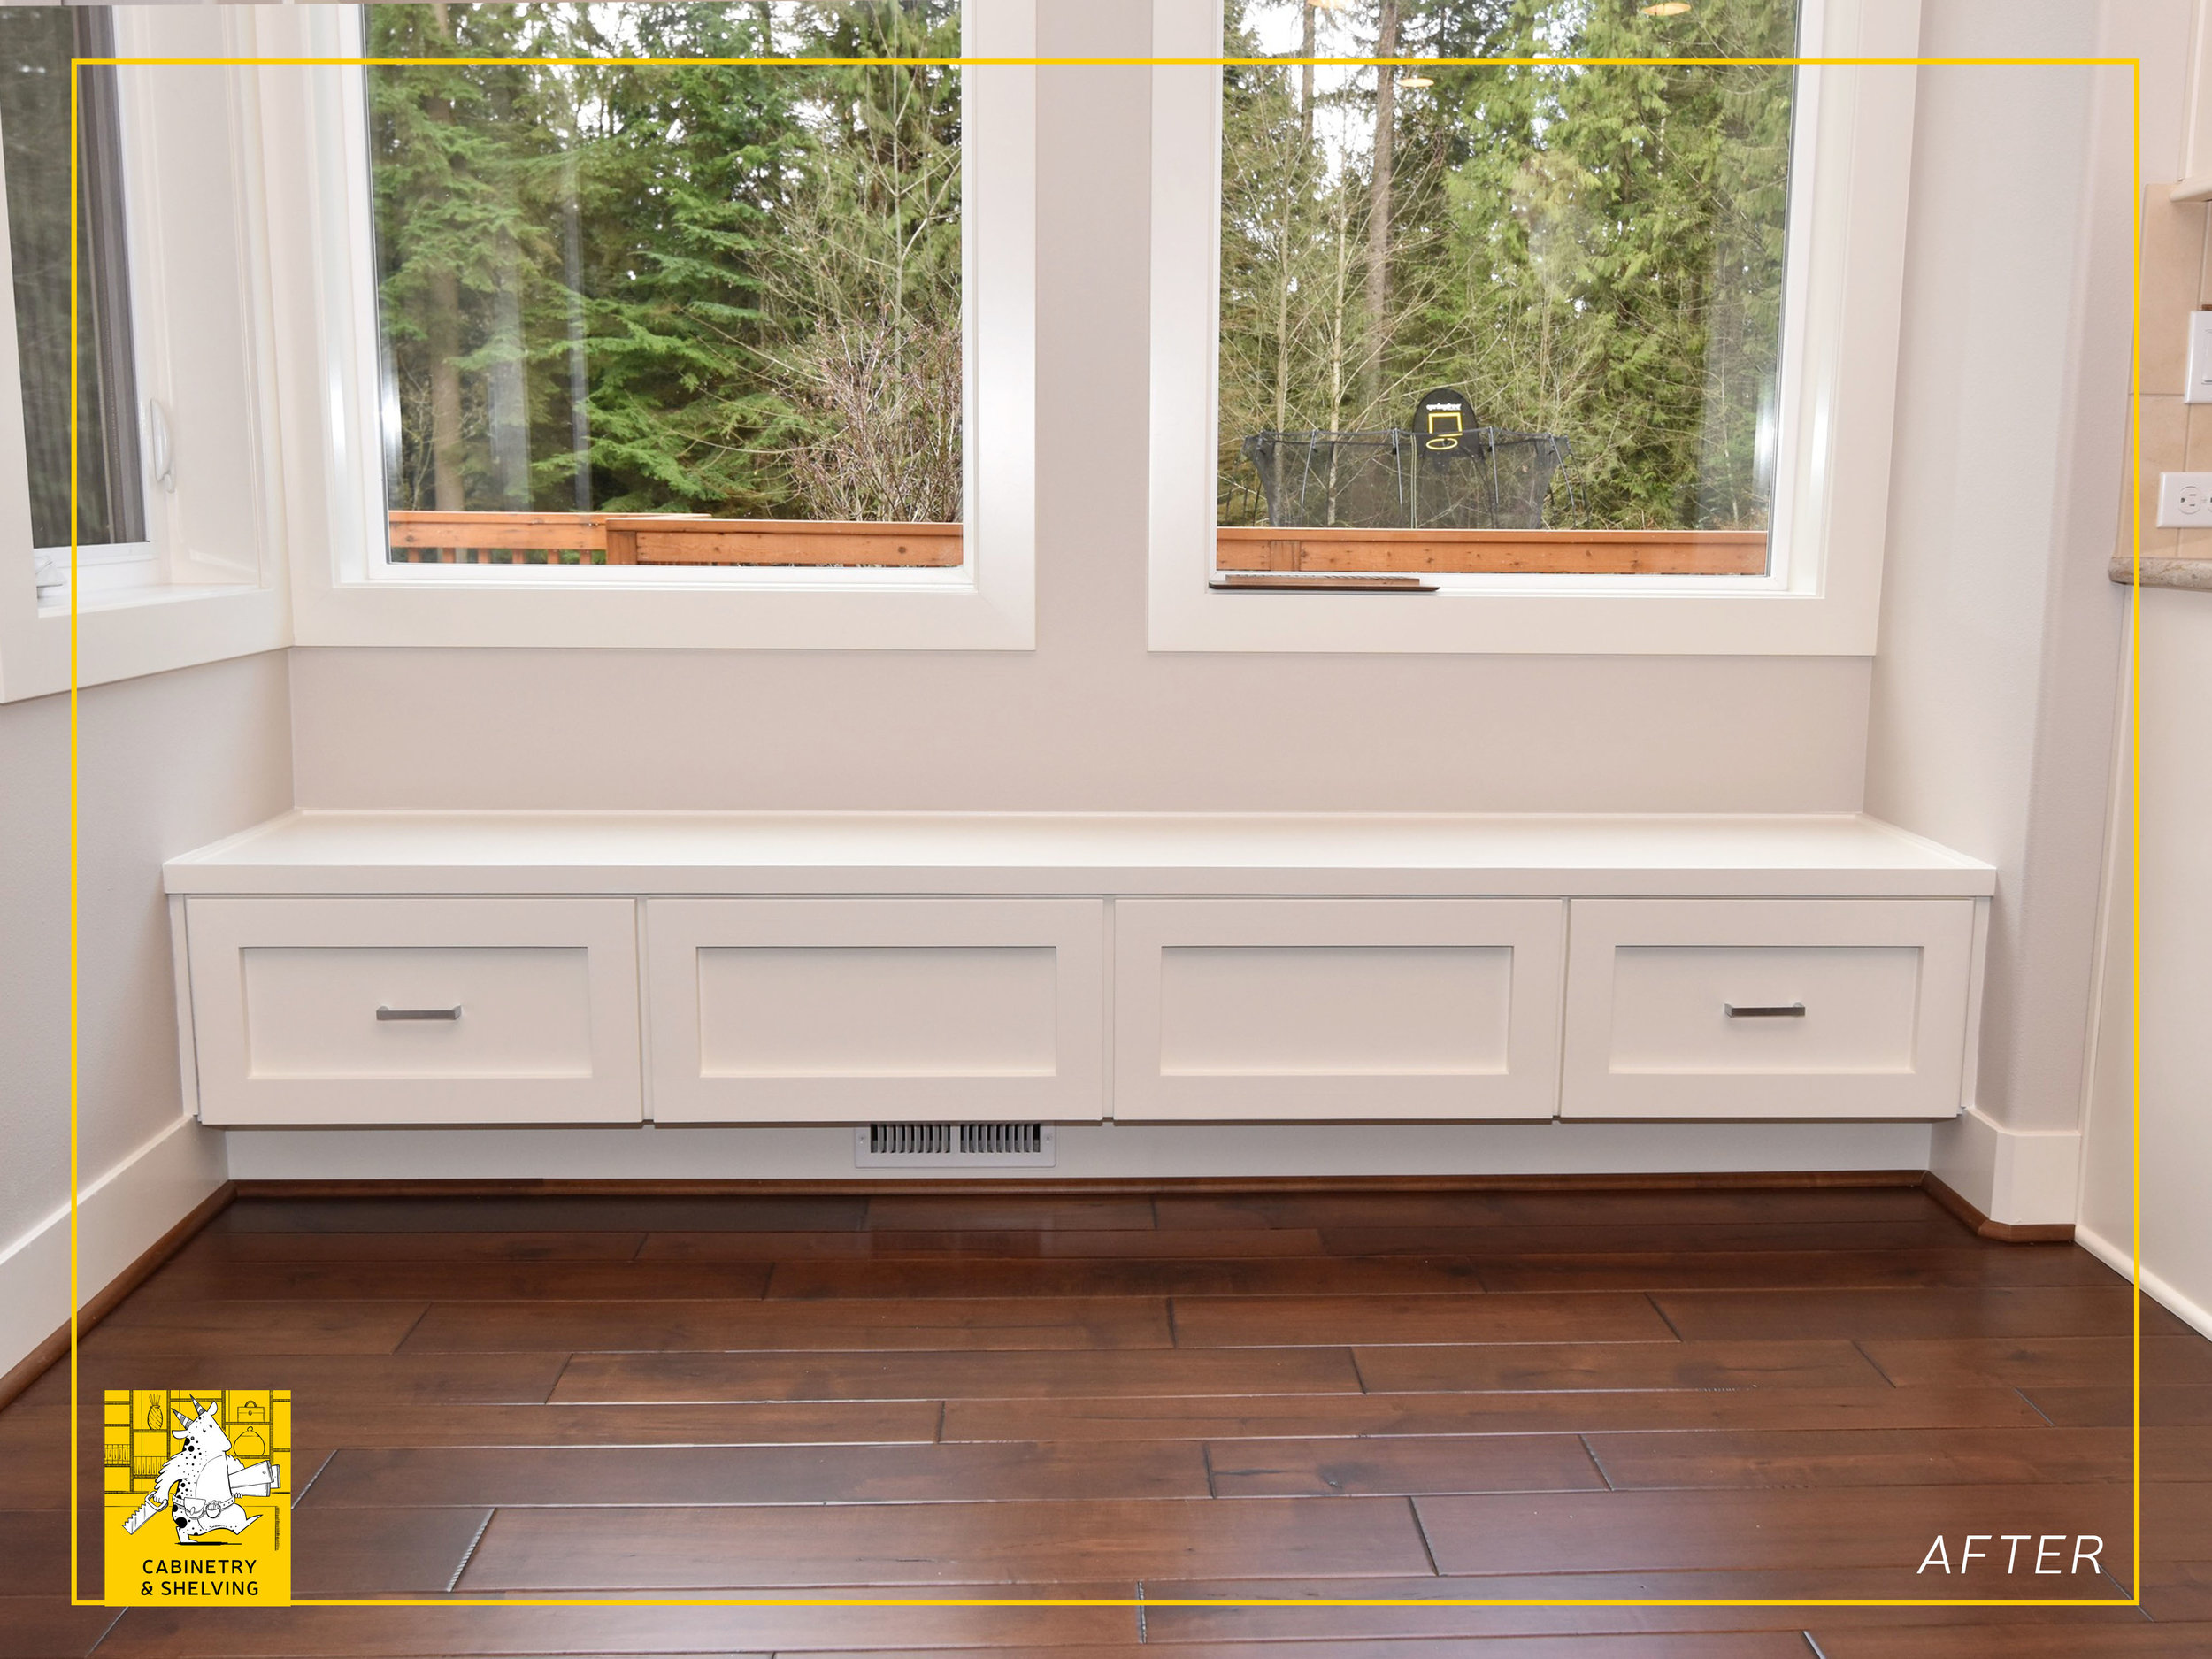 cabinetry 4 after 2.jpg